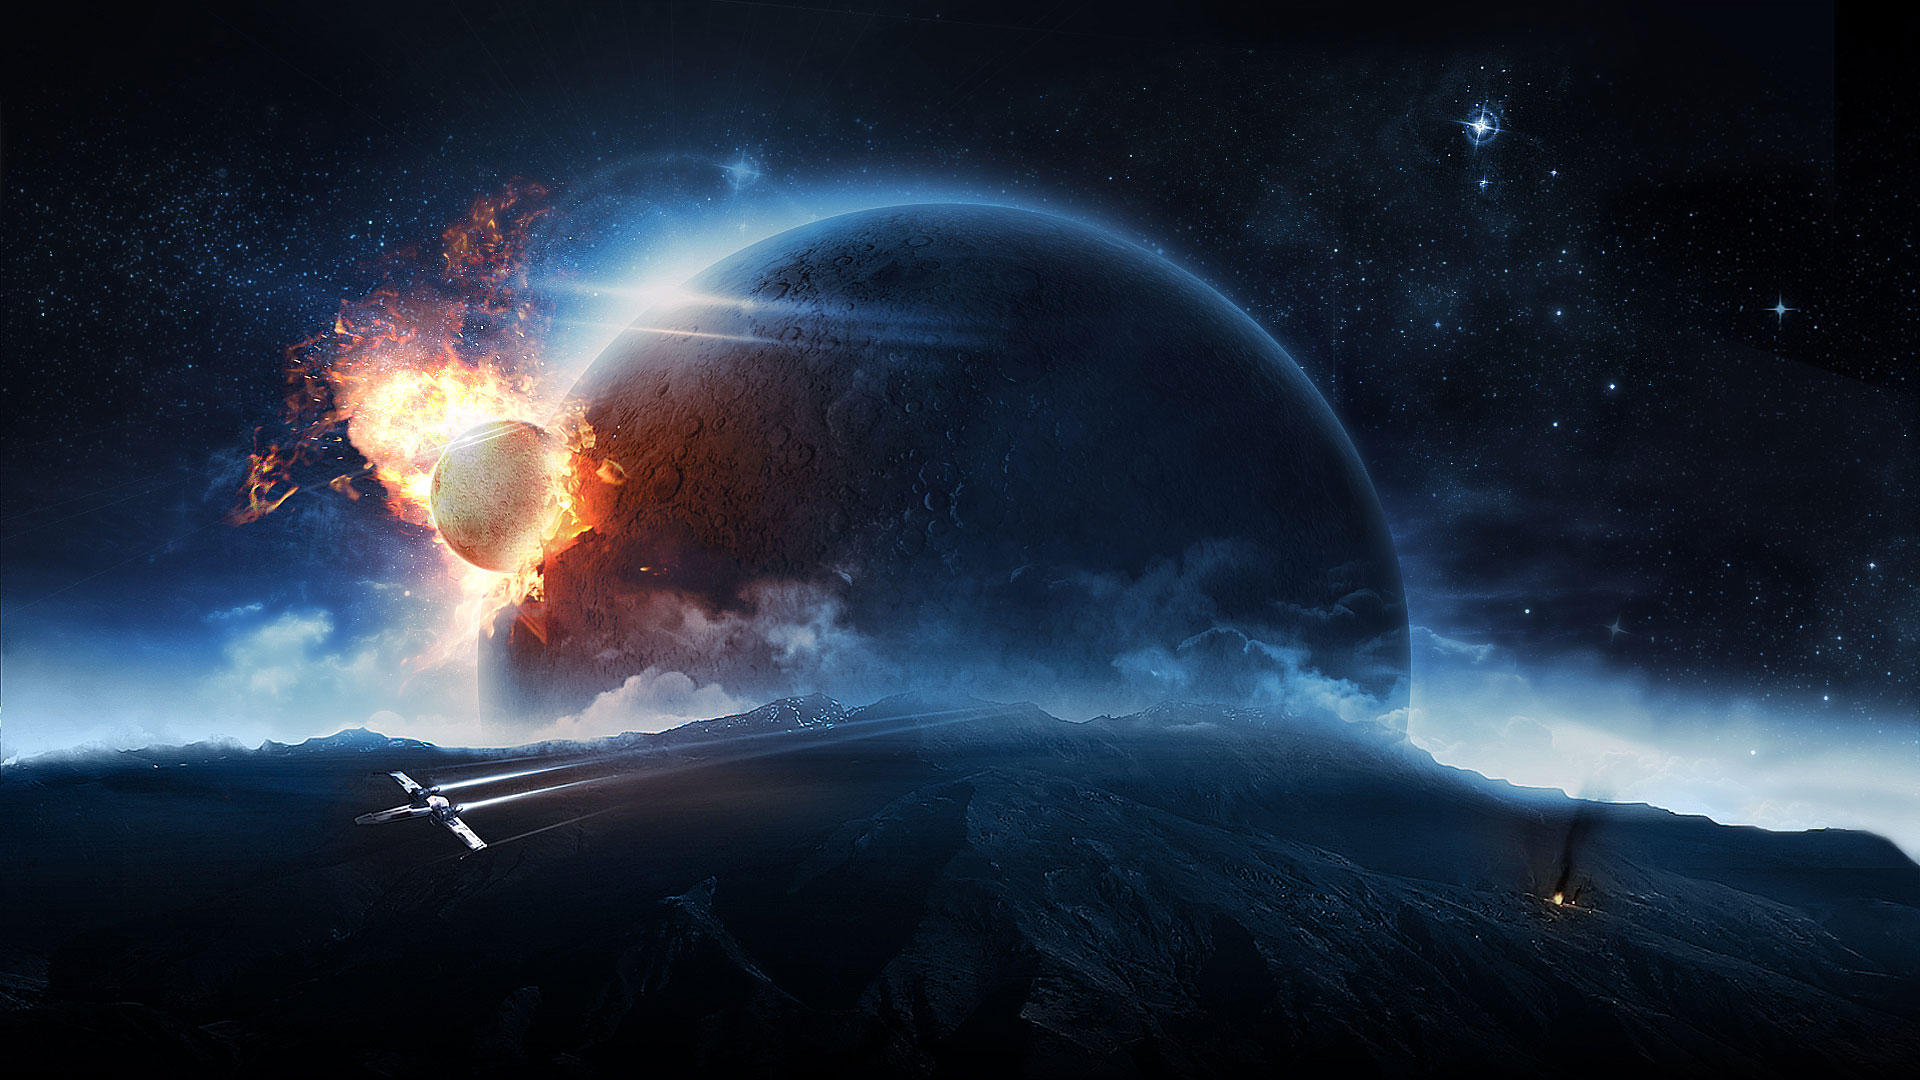 Free Space Wallpapers High Resolution - WallpaperSafari